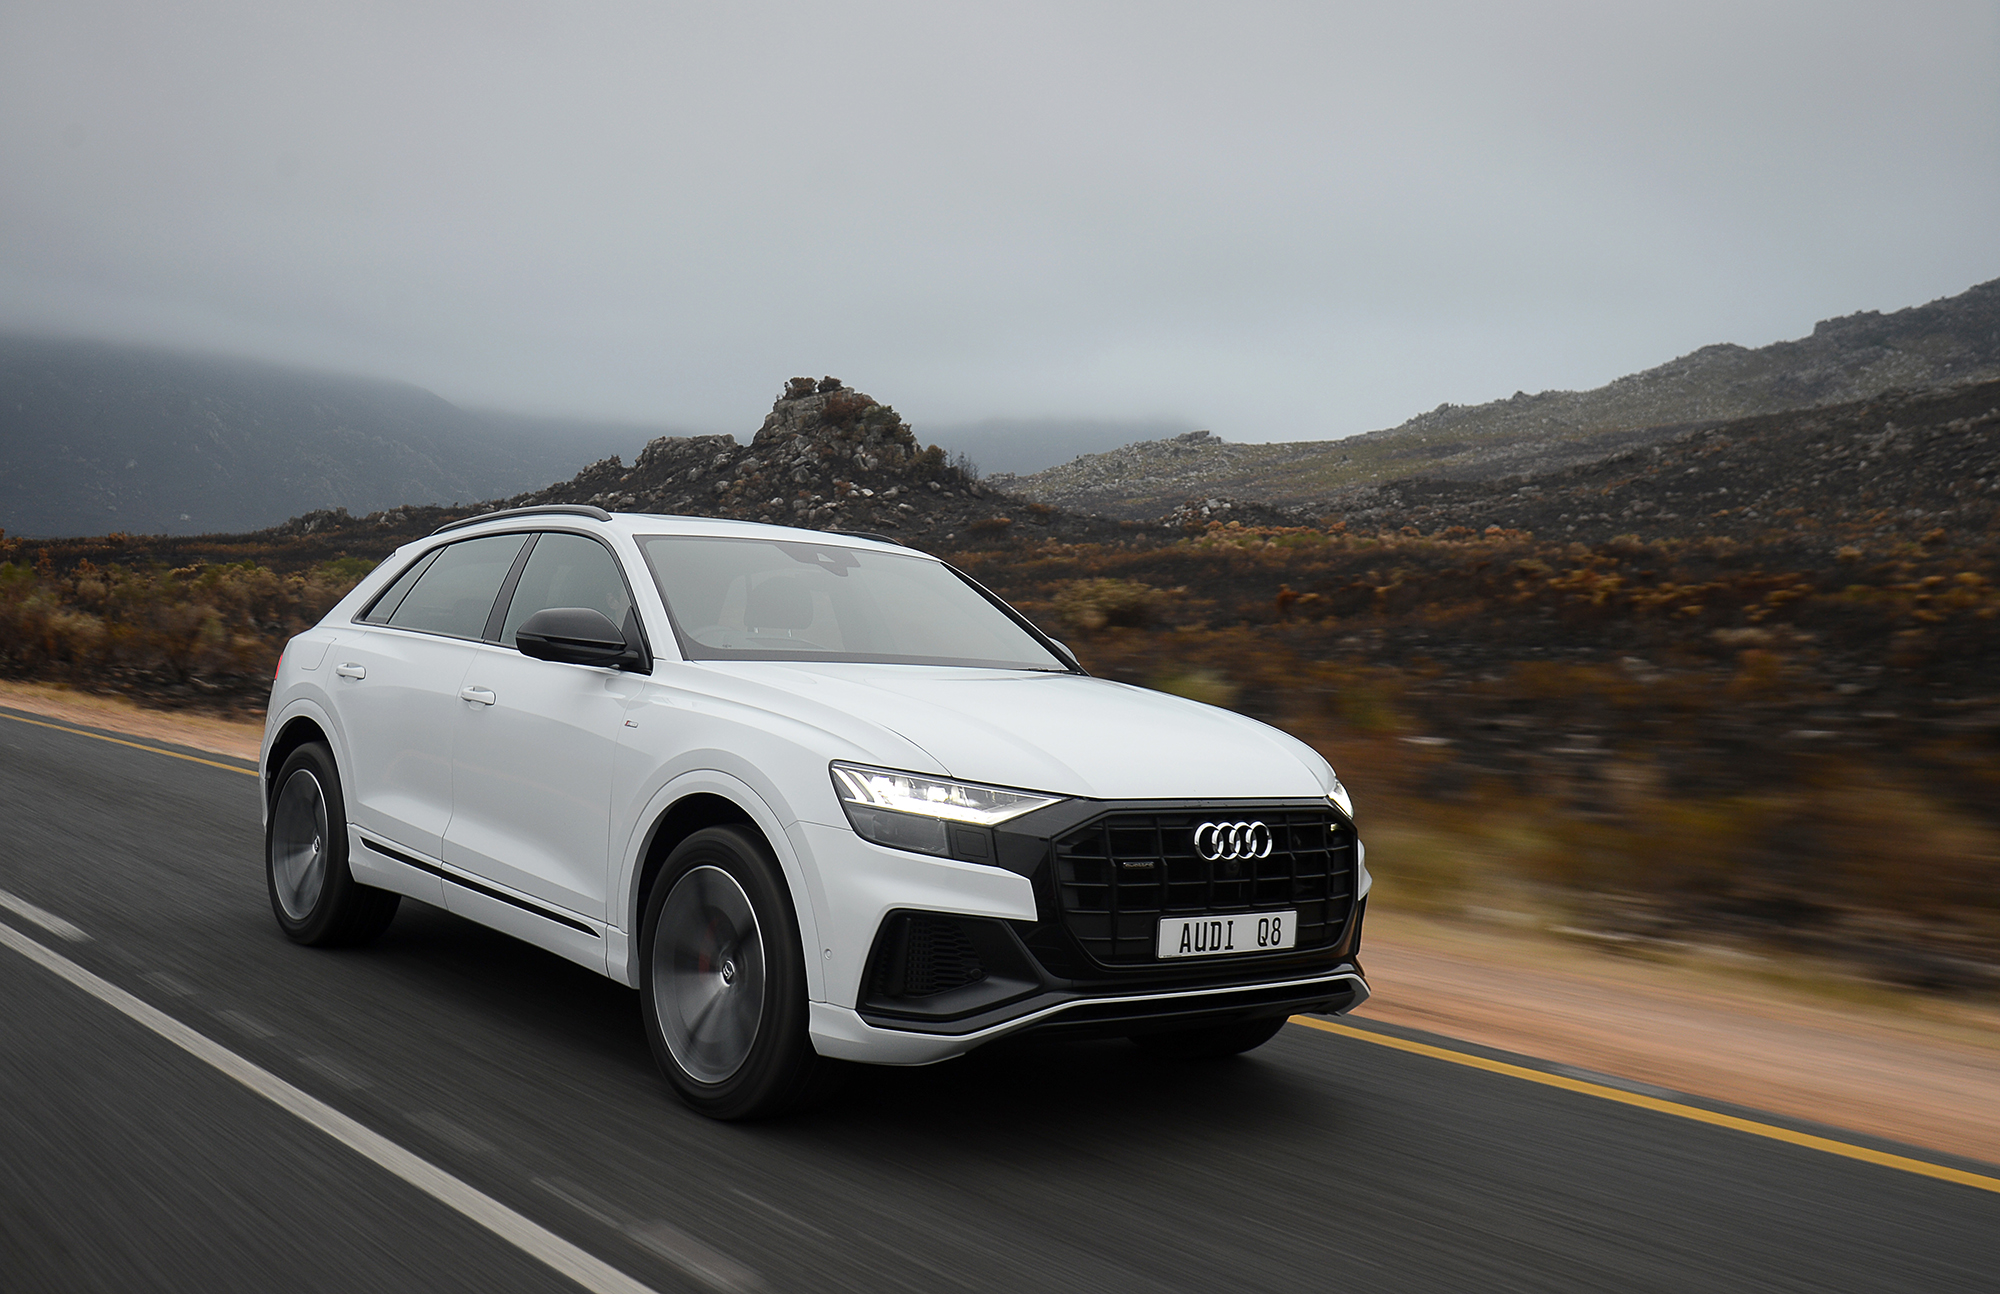 hight resolution of while the brand has introduced a flurry of new models abroad those have yet to reach our shores meanwhile arch rivals mercedes benz and bmw have had no